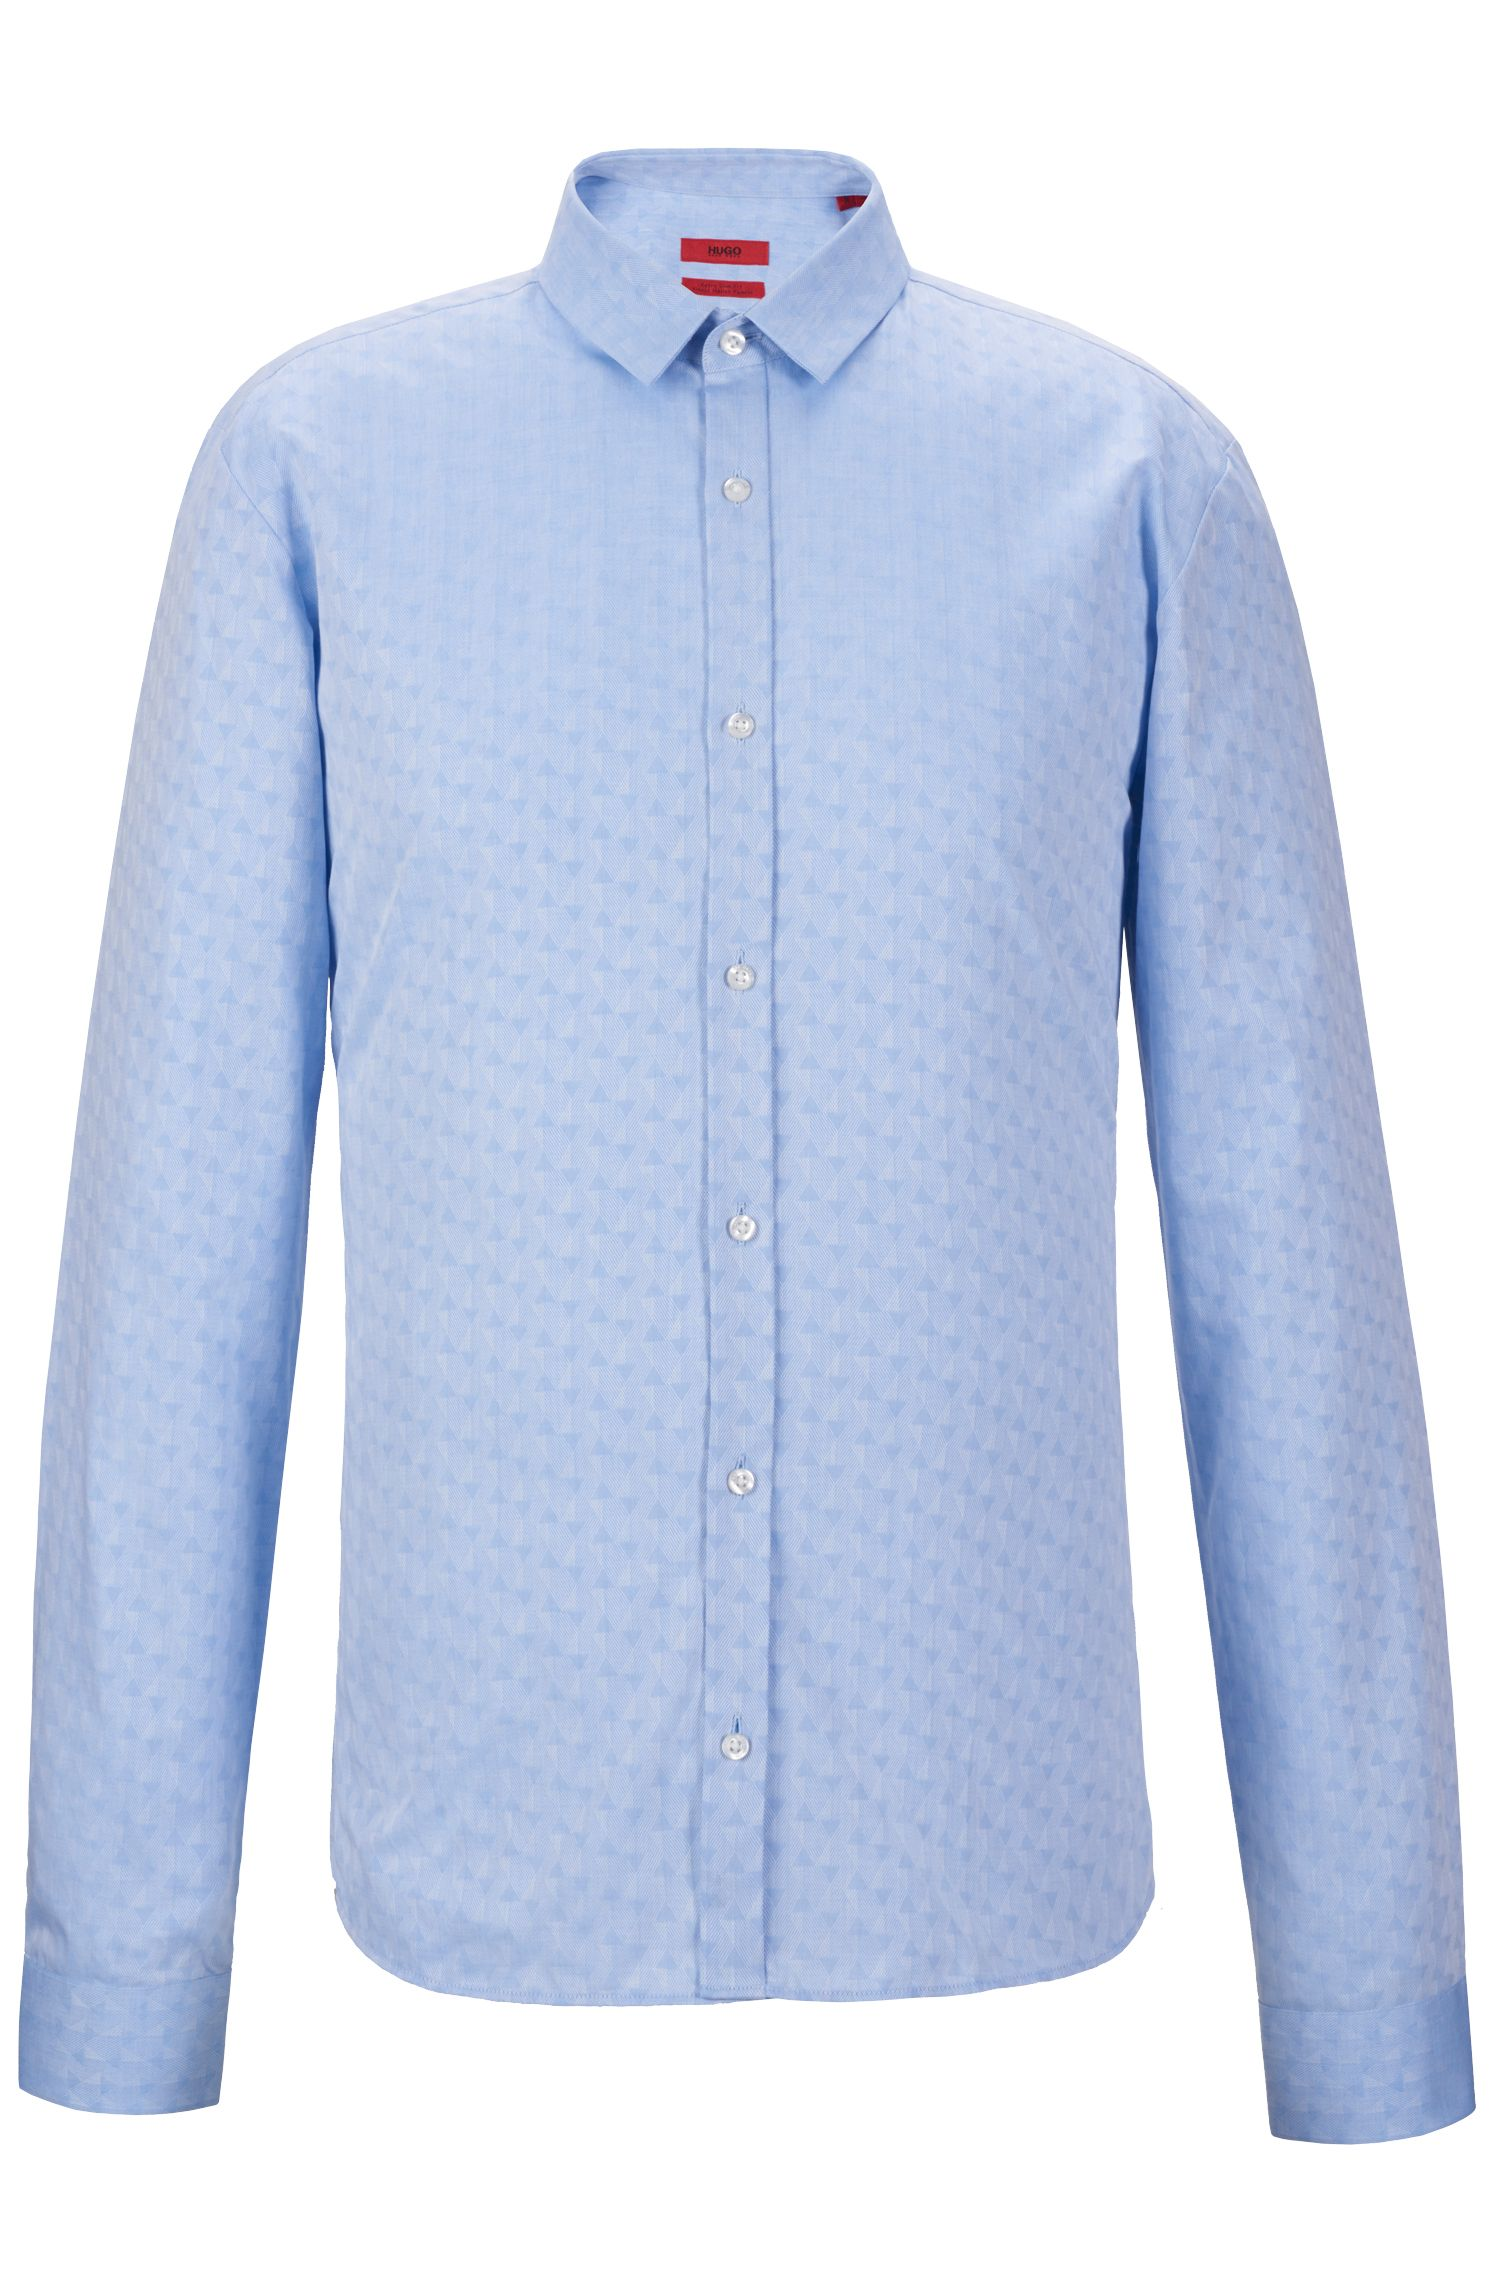 Jacquard Cotton Button Down Shirt, Extra Slim Fit | Ero